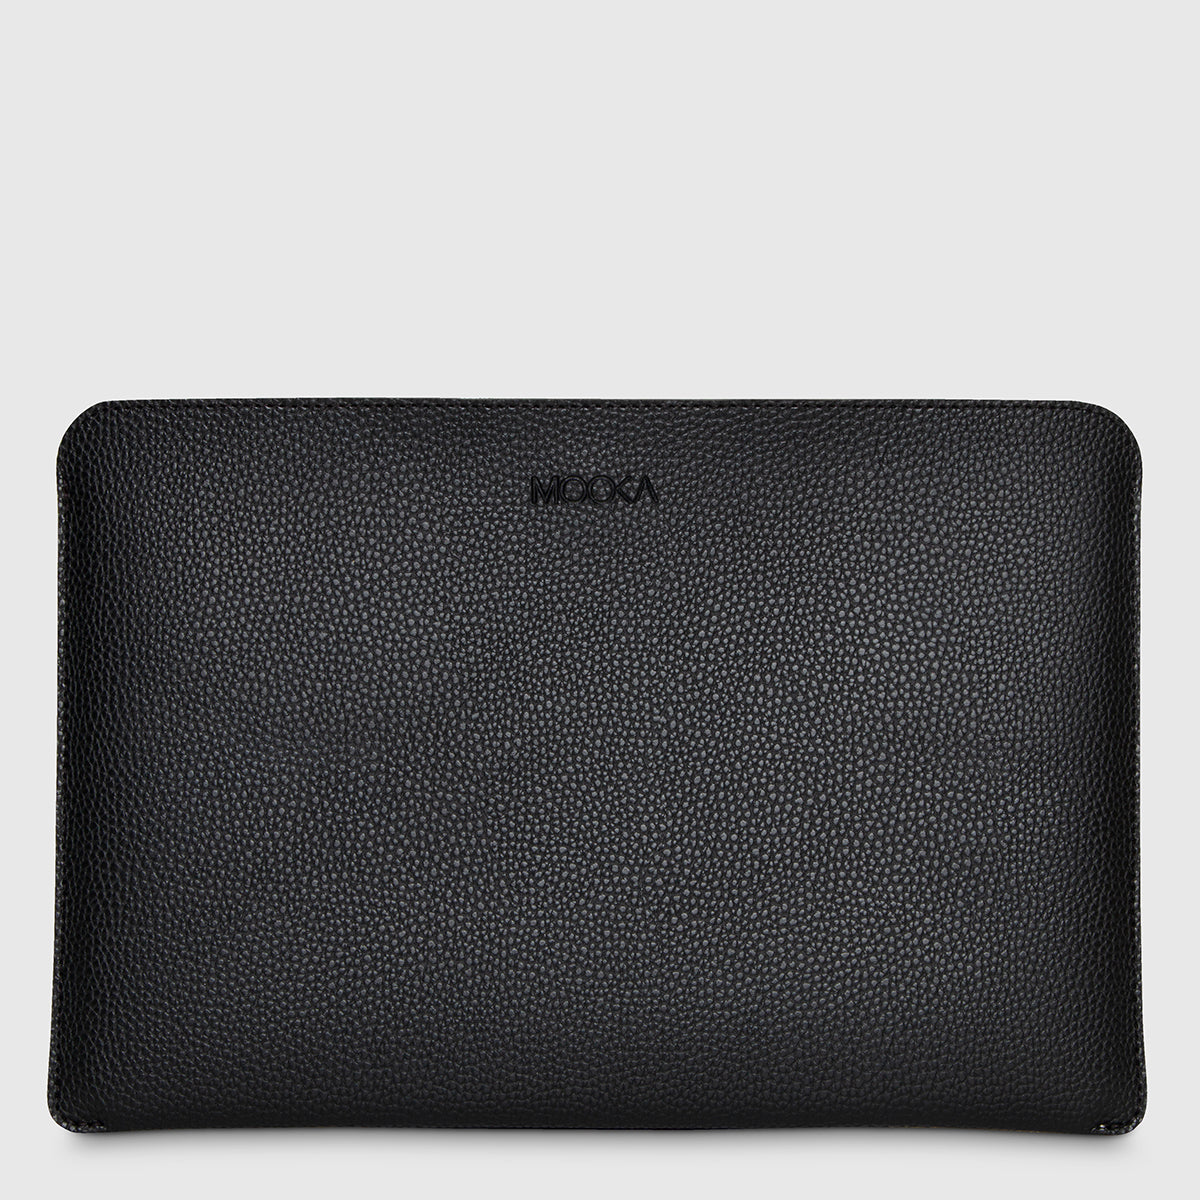 MacBook Quantum Sleeve Black